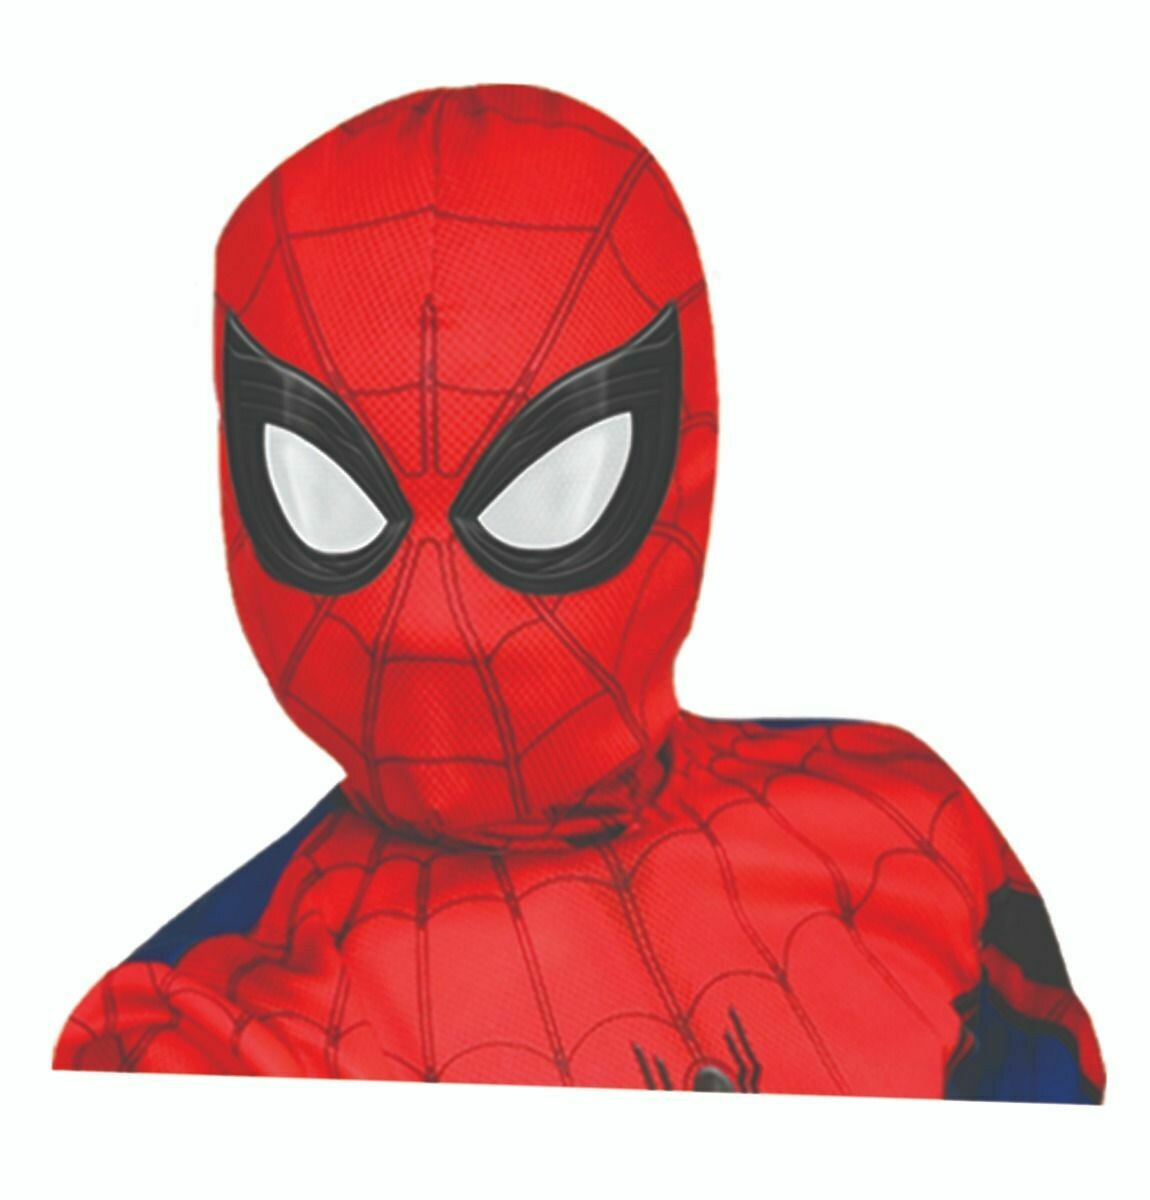 Spider-Man: Far From Home Deluxe Lenticular Fabric Mask